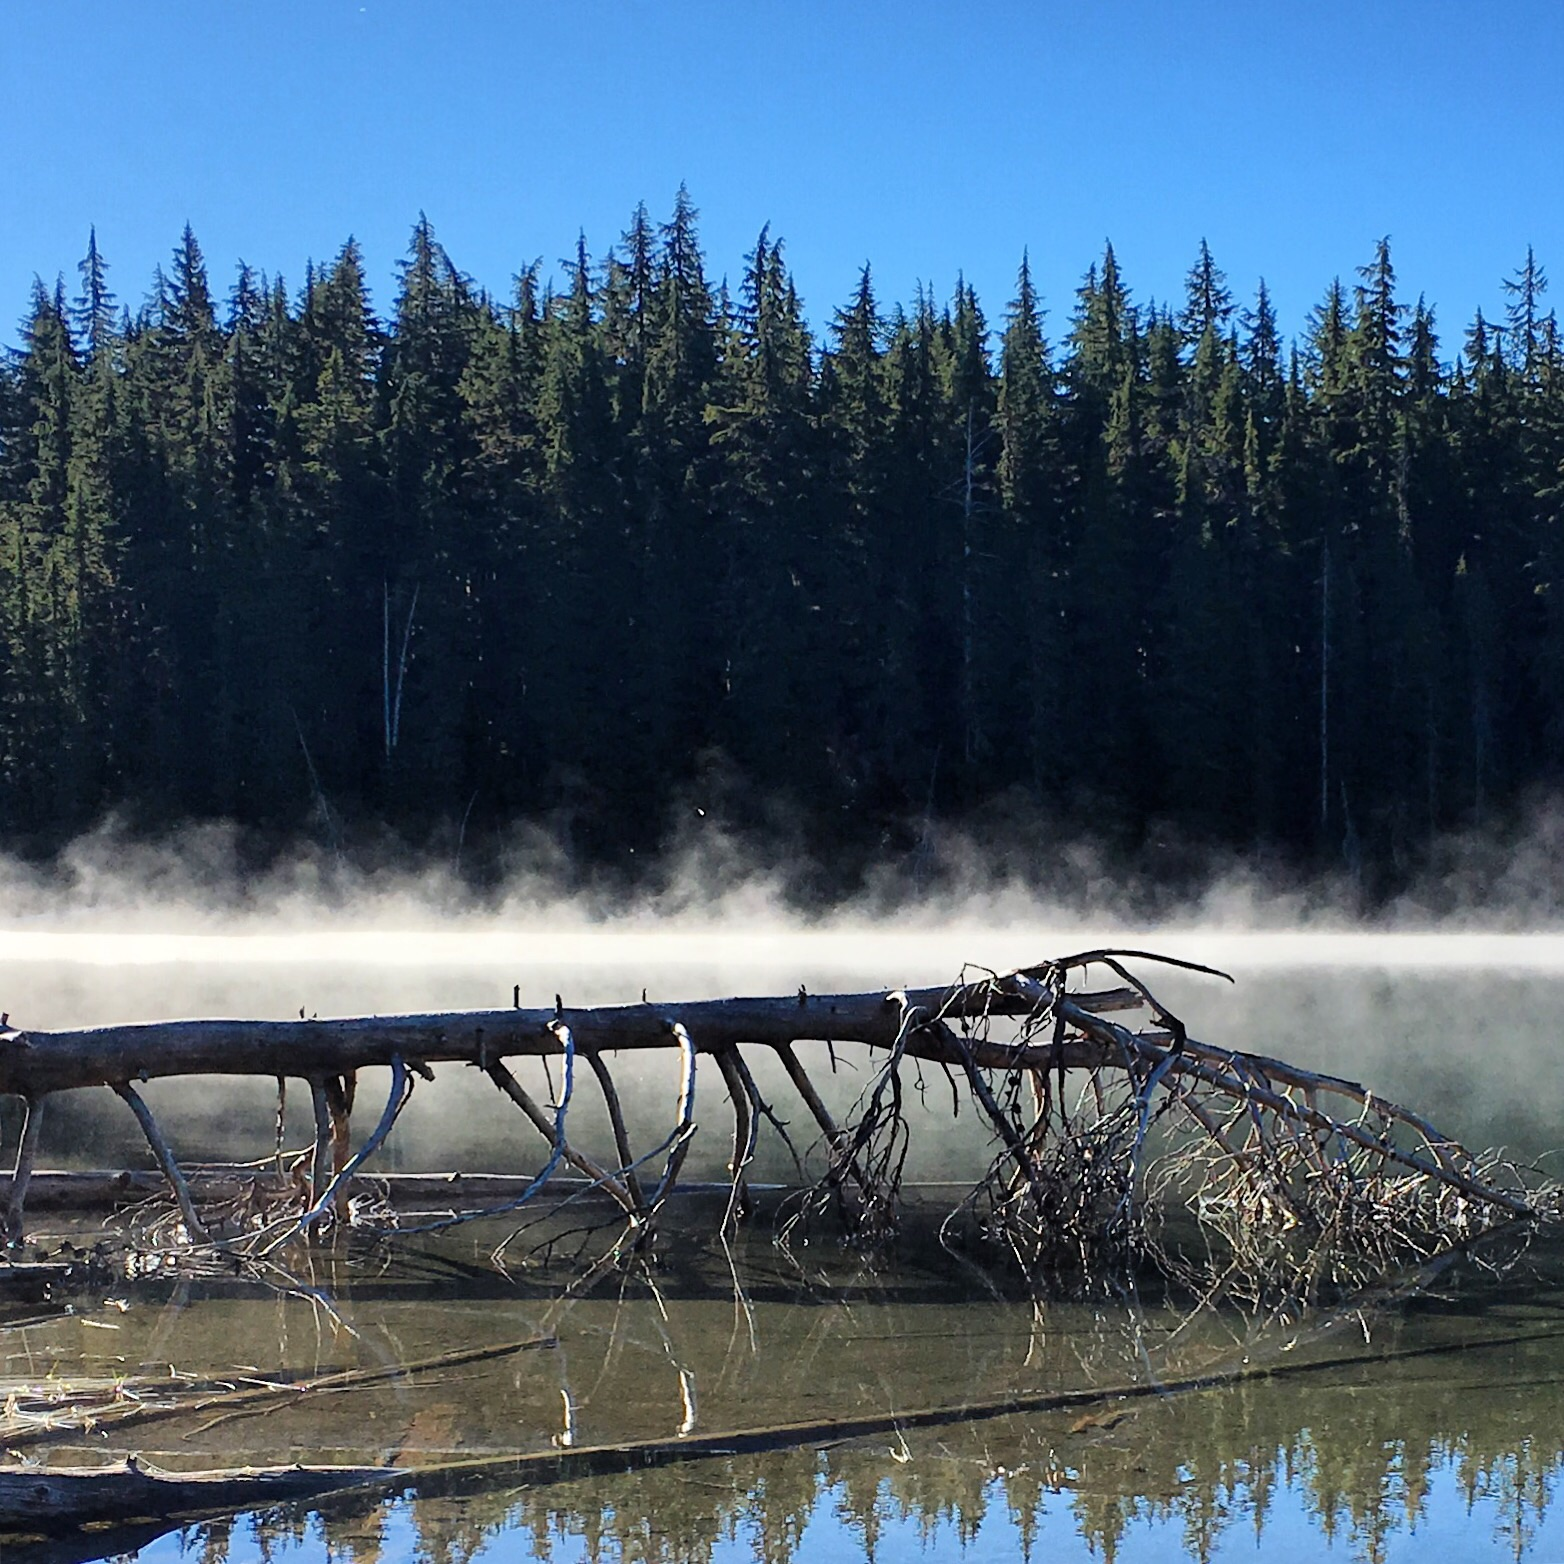 Morning steam fog on one of many scenic little lakes